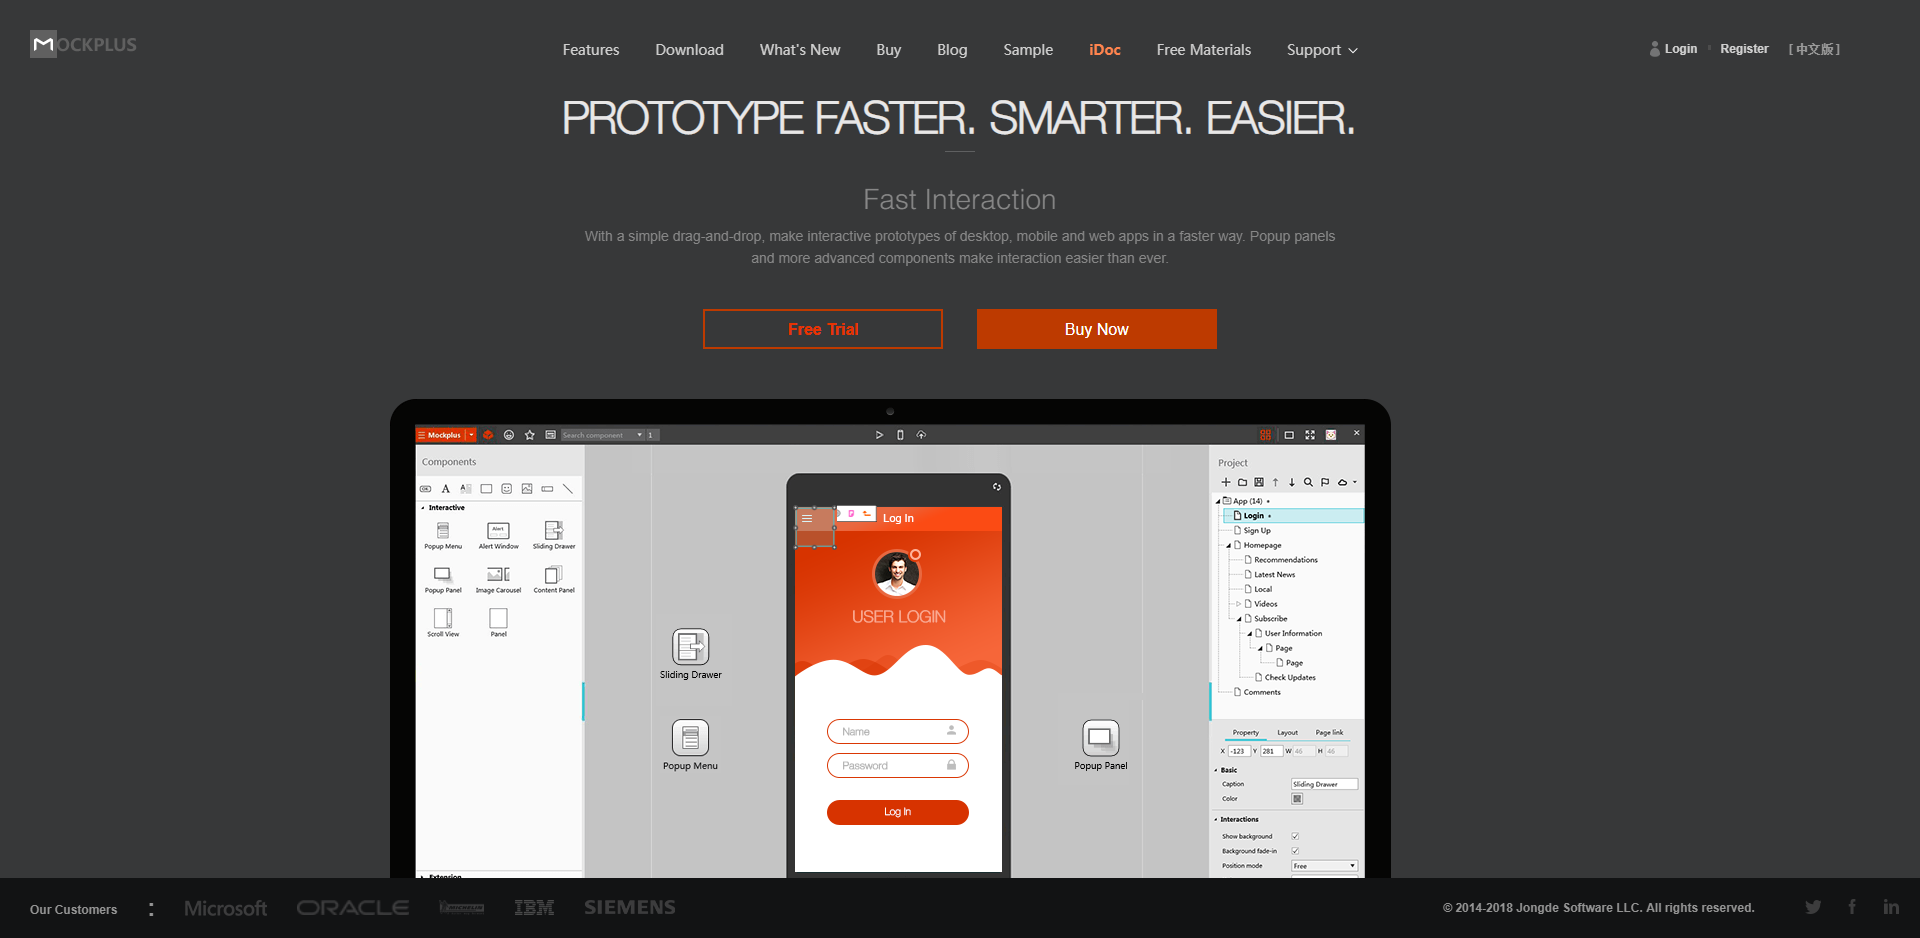 Prototype faster, smarter and easier with Mockplus